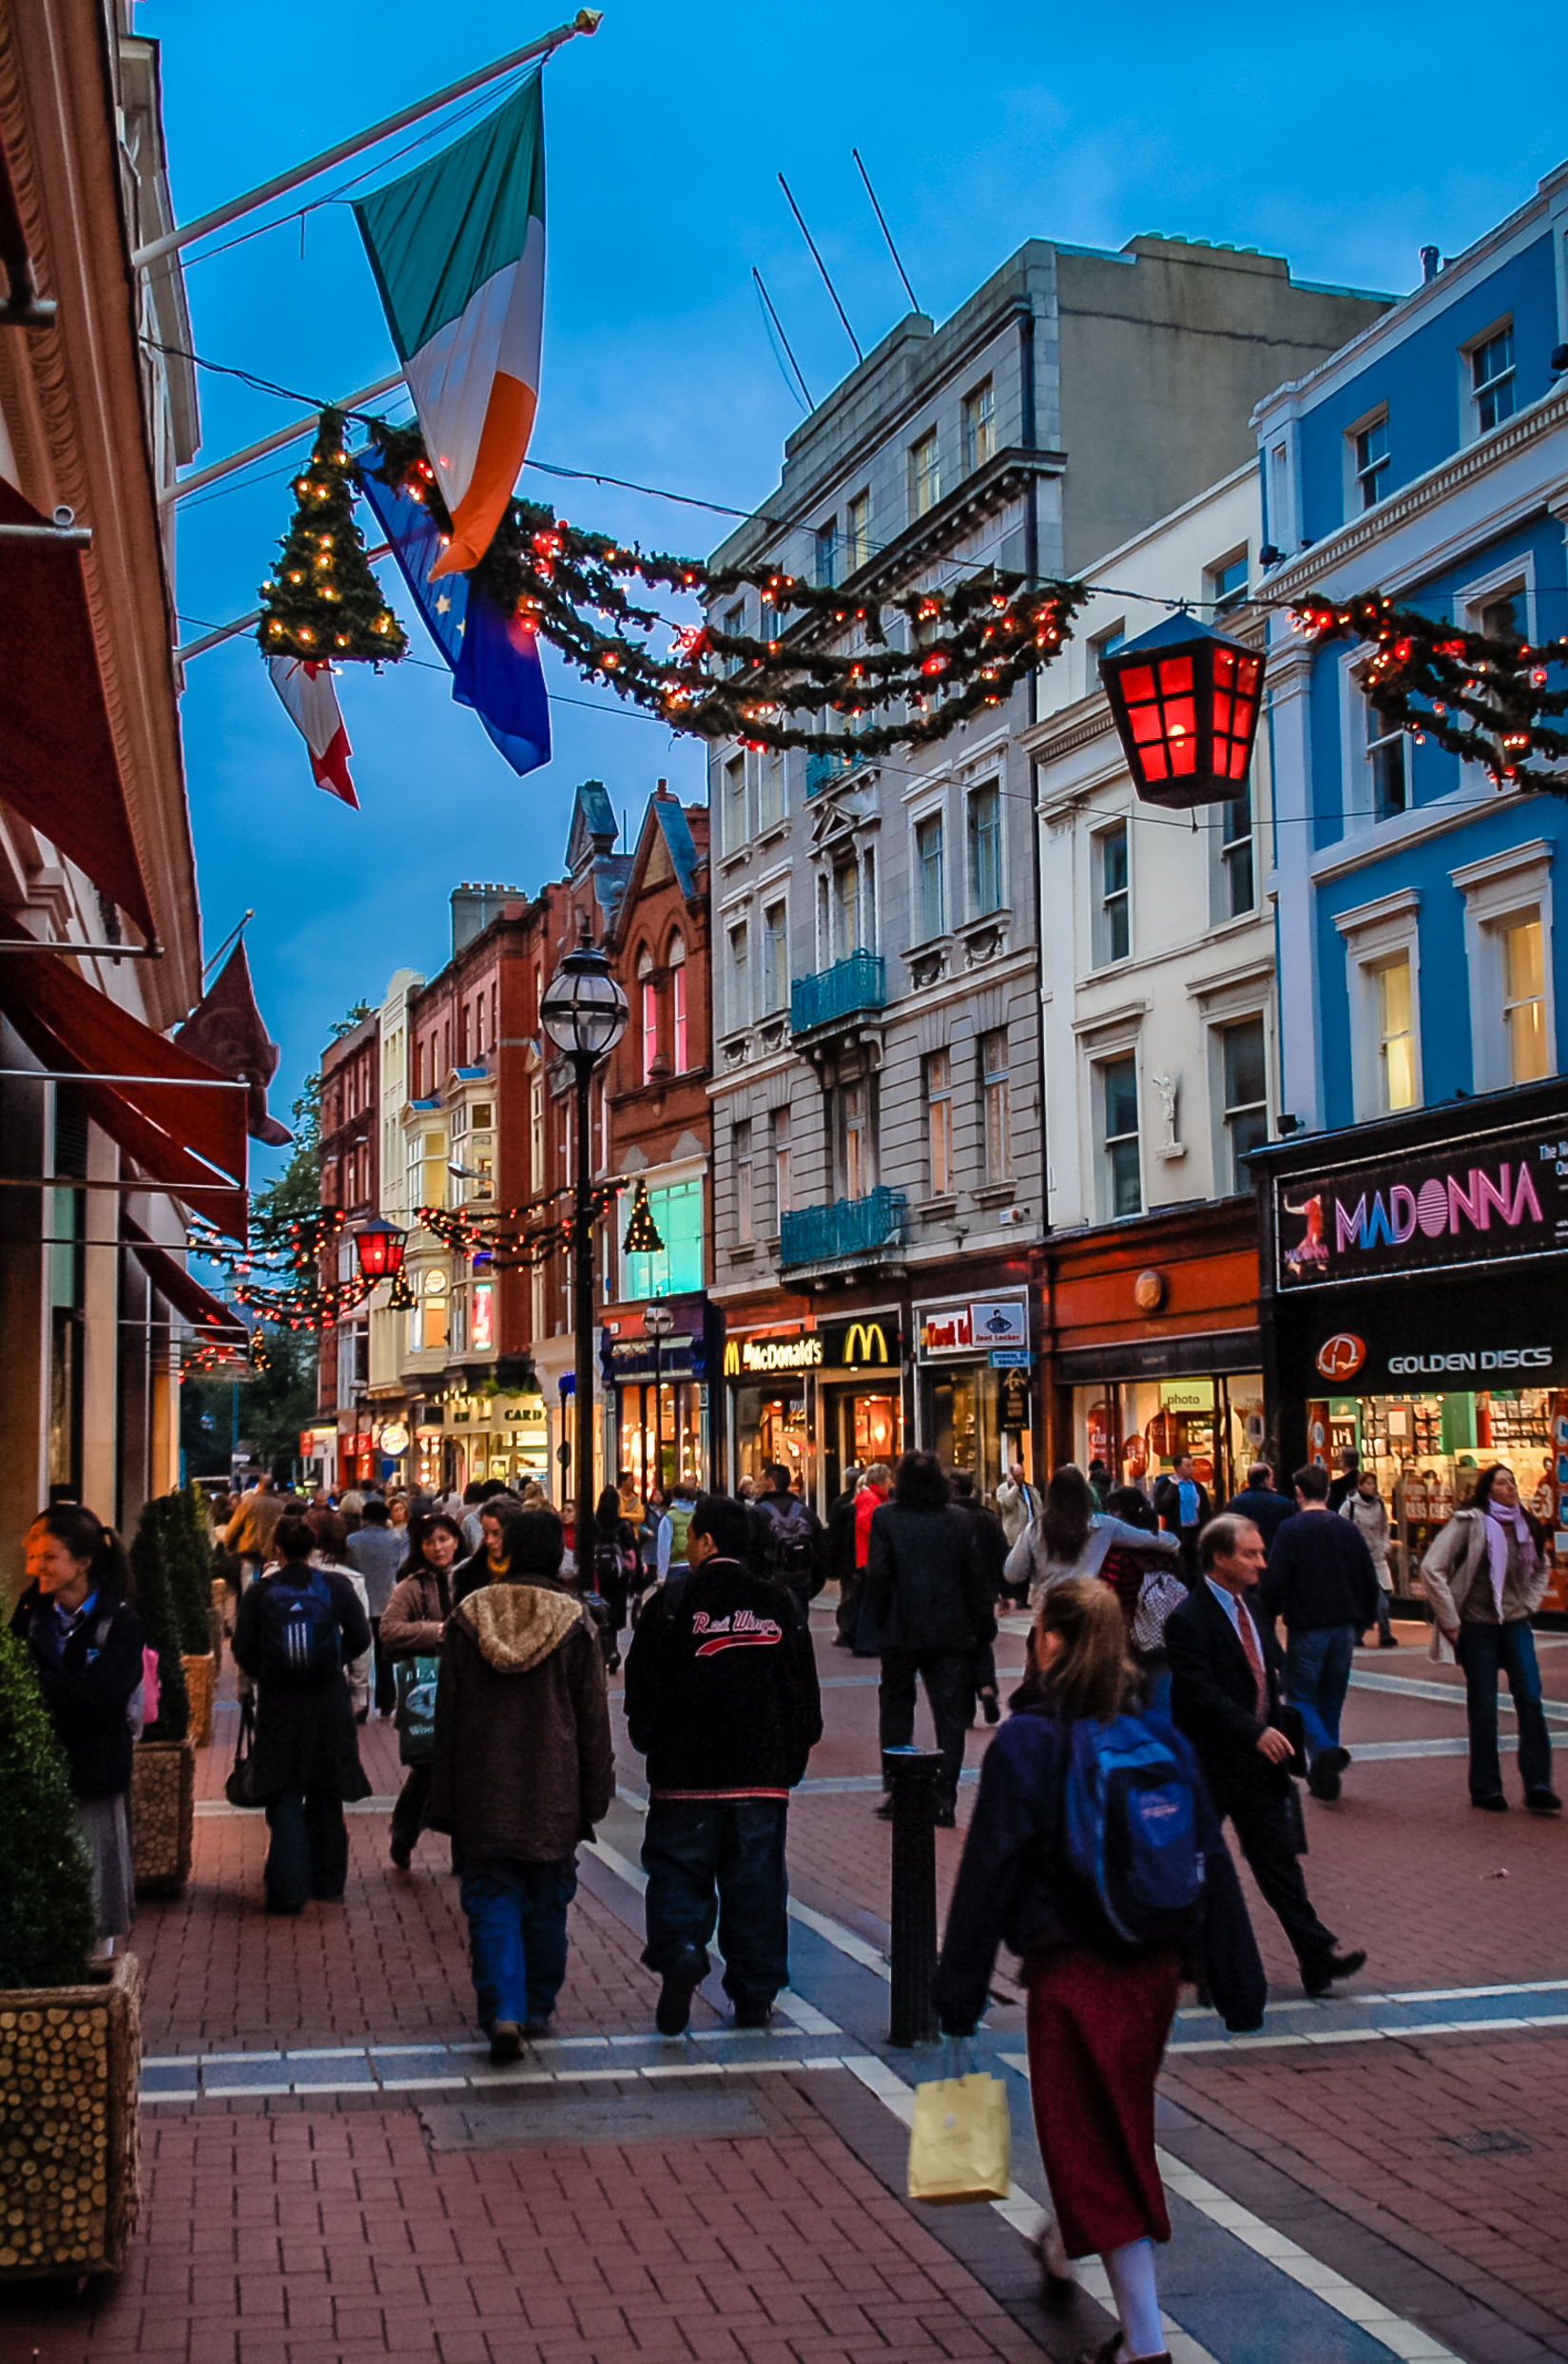 Dublin, Ireland - November 15, 2005: People wander along Grafton Street in Dublin, Ireland. Grafton Street is the main pedestrian street in Dublin and is full of shops, pubs and restaurants.